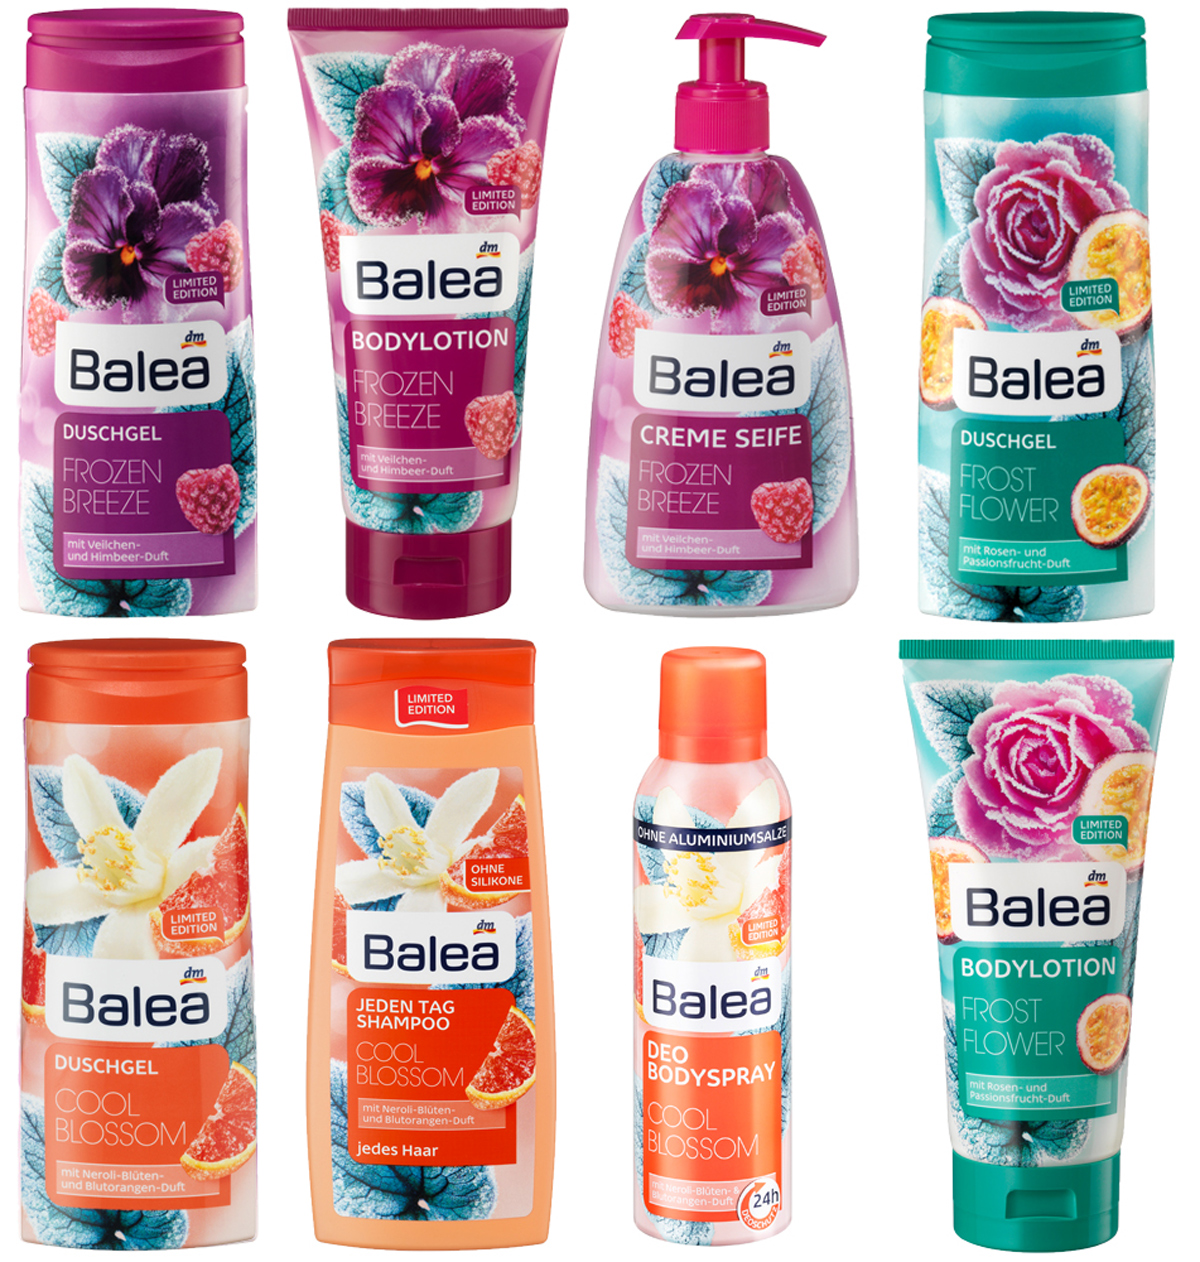 balea-herbst-limited-edition